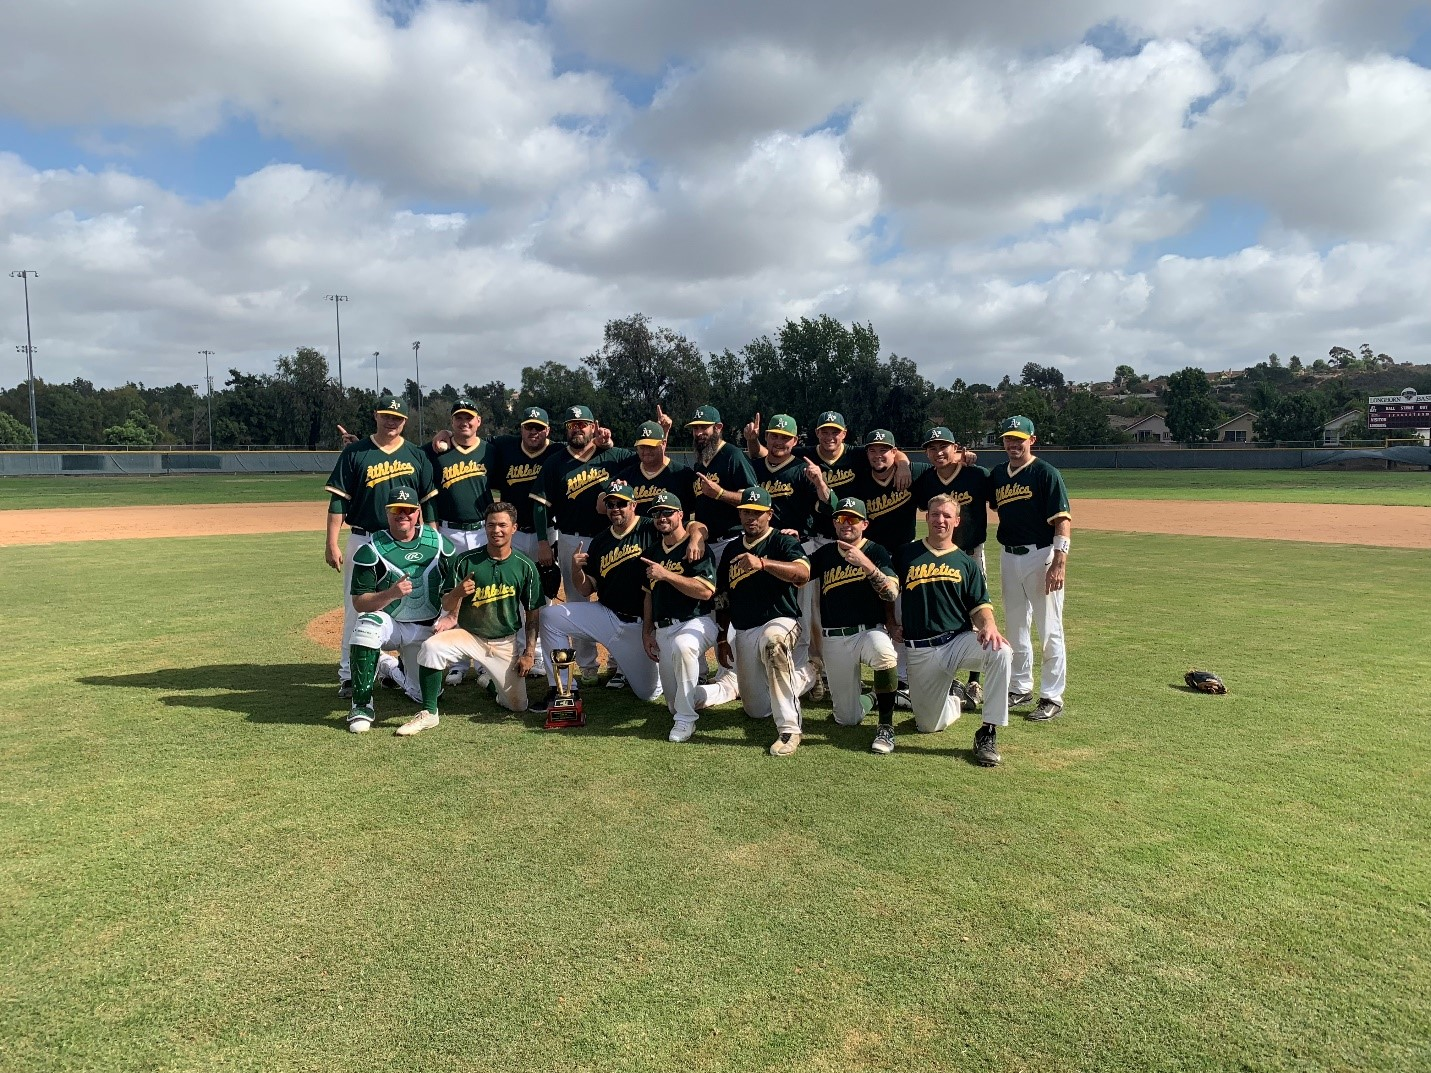 2018 MABL 18+ SUMMER LEAGUE CHAMPIONS SAN DIEGO A'S